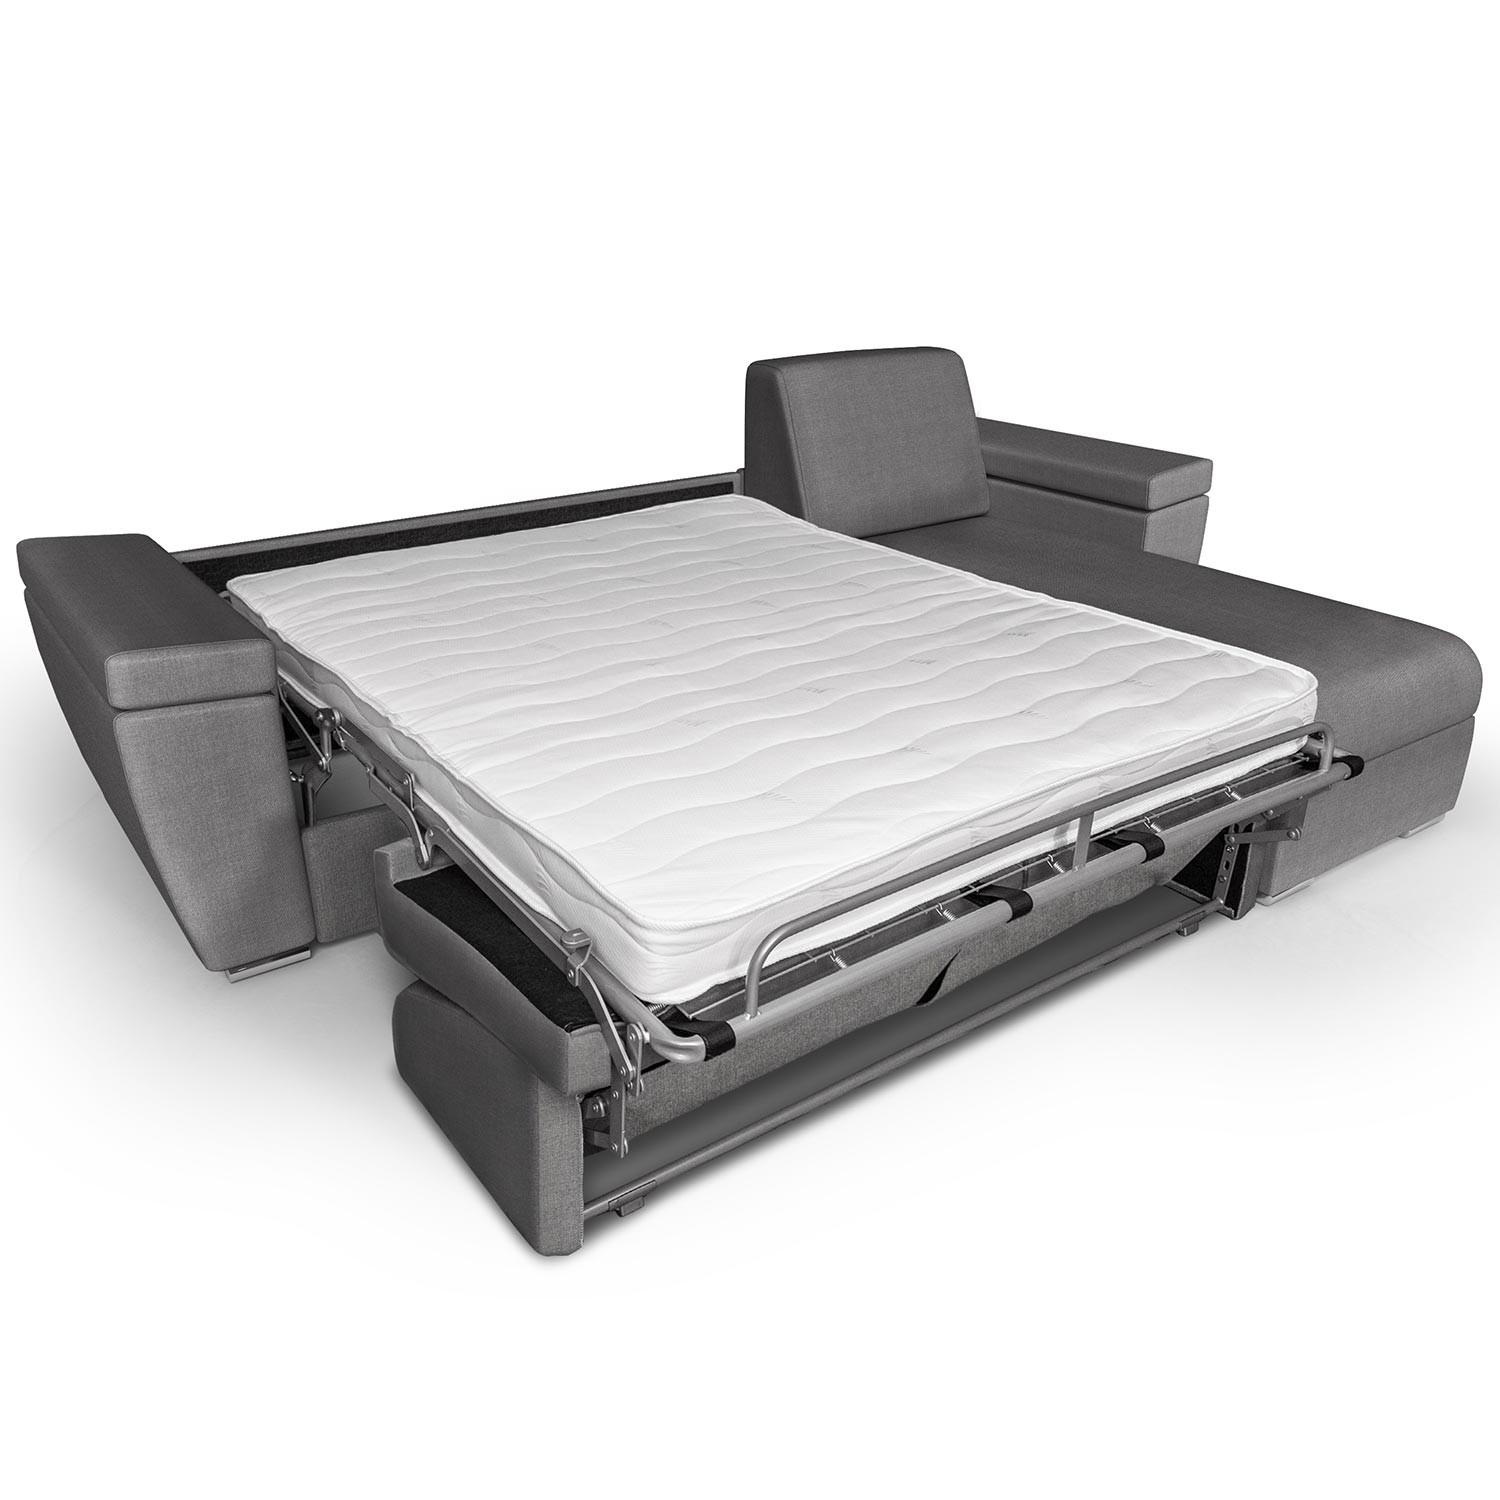 canap d 39 angle convertible express avec matelas int gr et coffre r. Black Bedroom Furniture Sets. Home Design Ideas